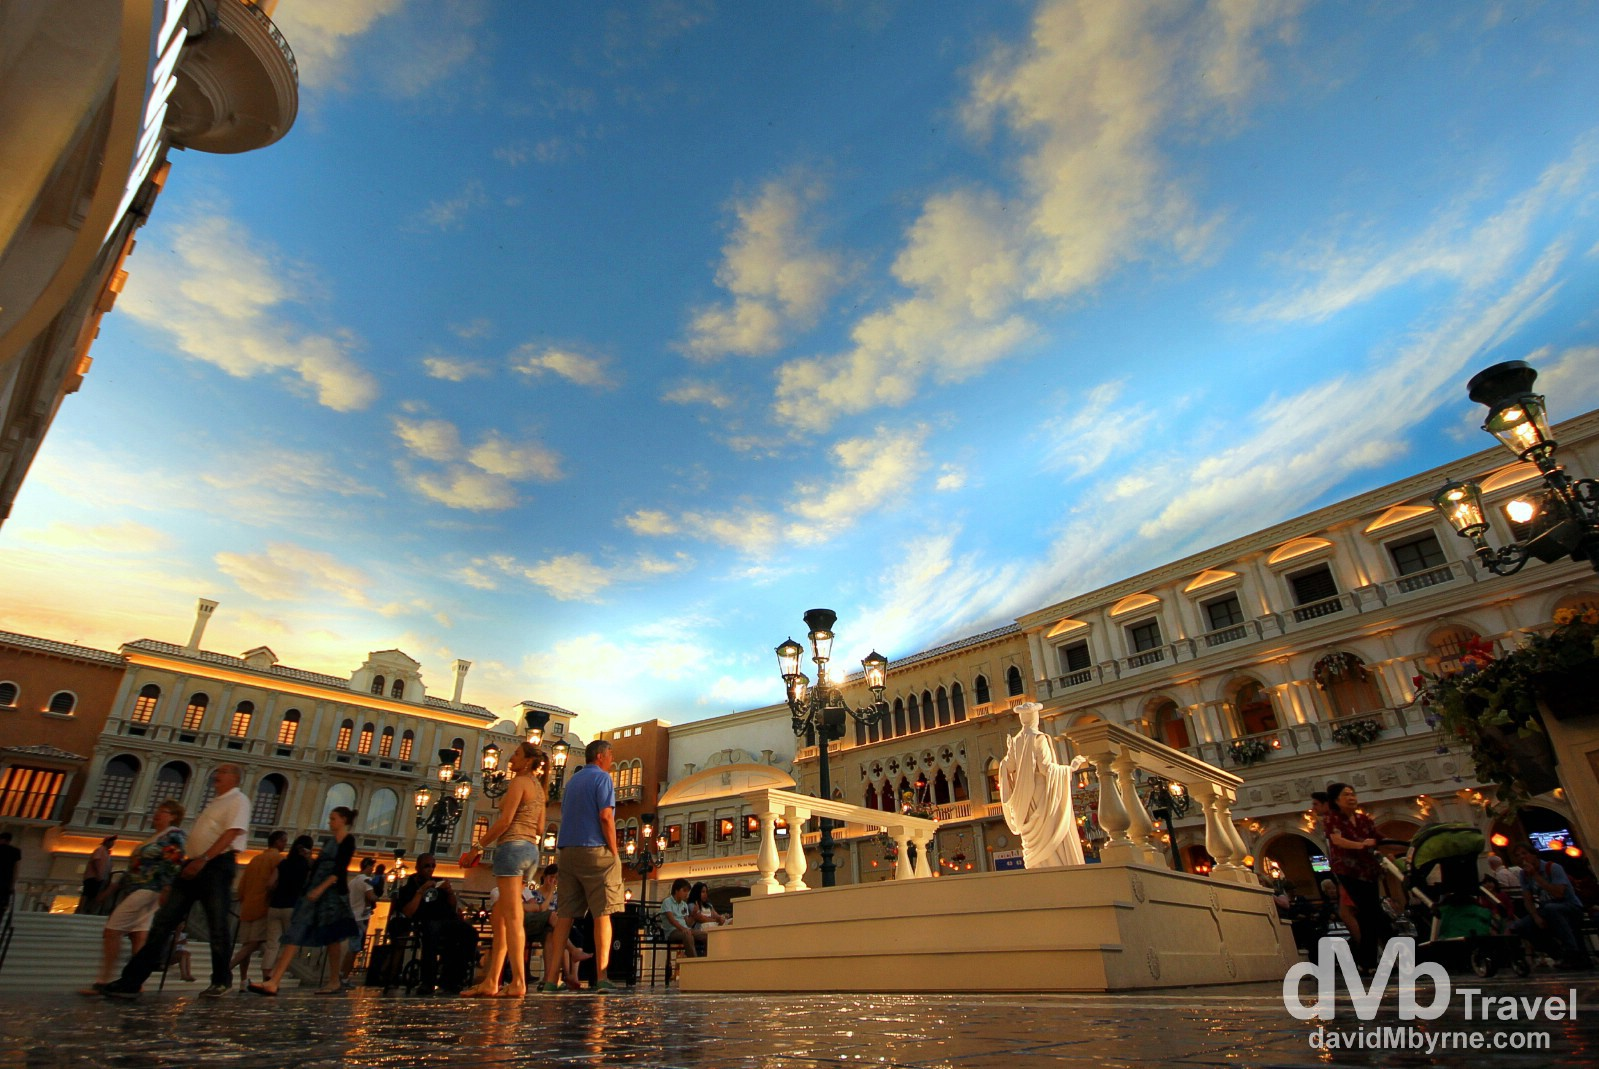 The Venetian Hotel & Casino, Las Vegas, Nevada, USA. April 4th 2013.